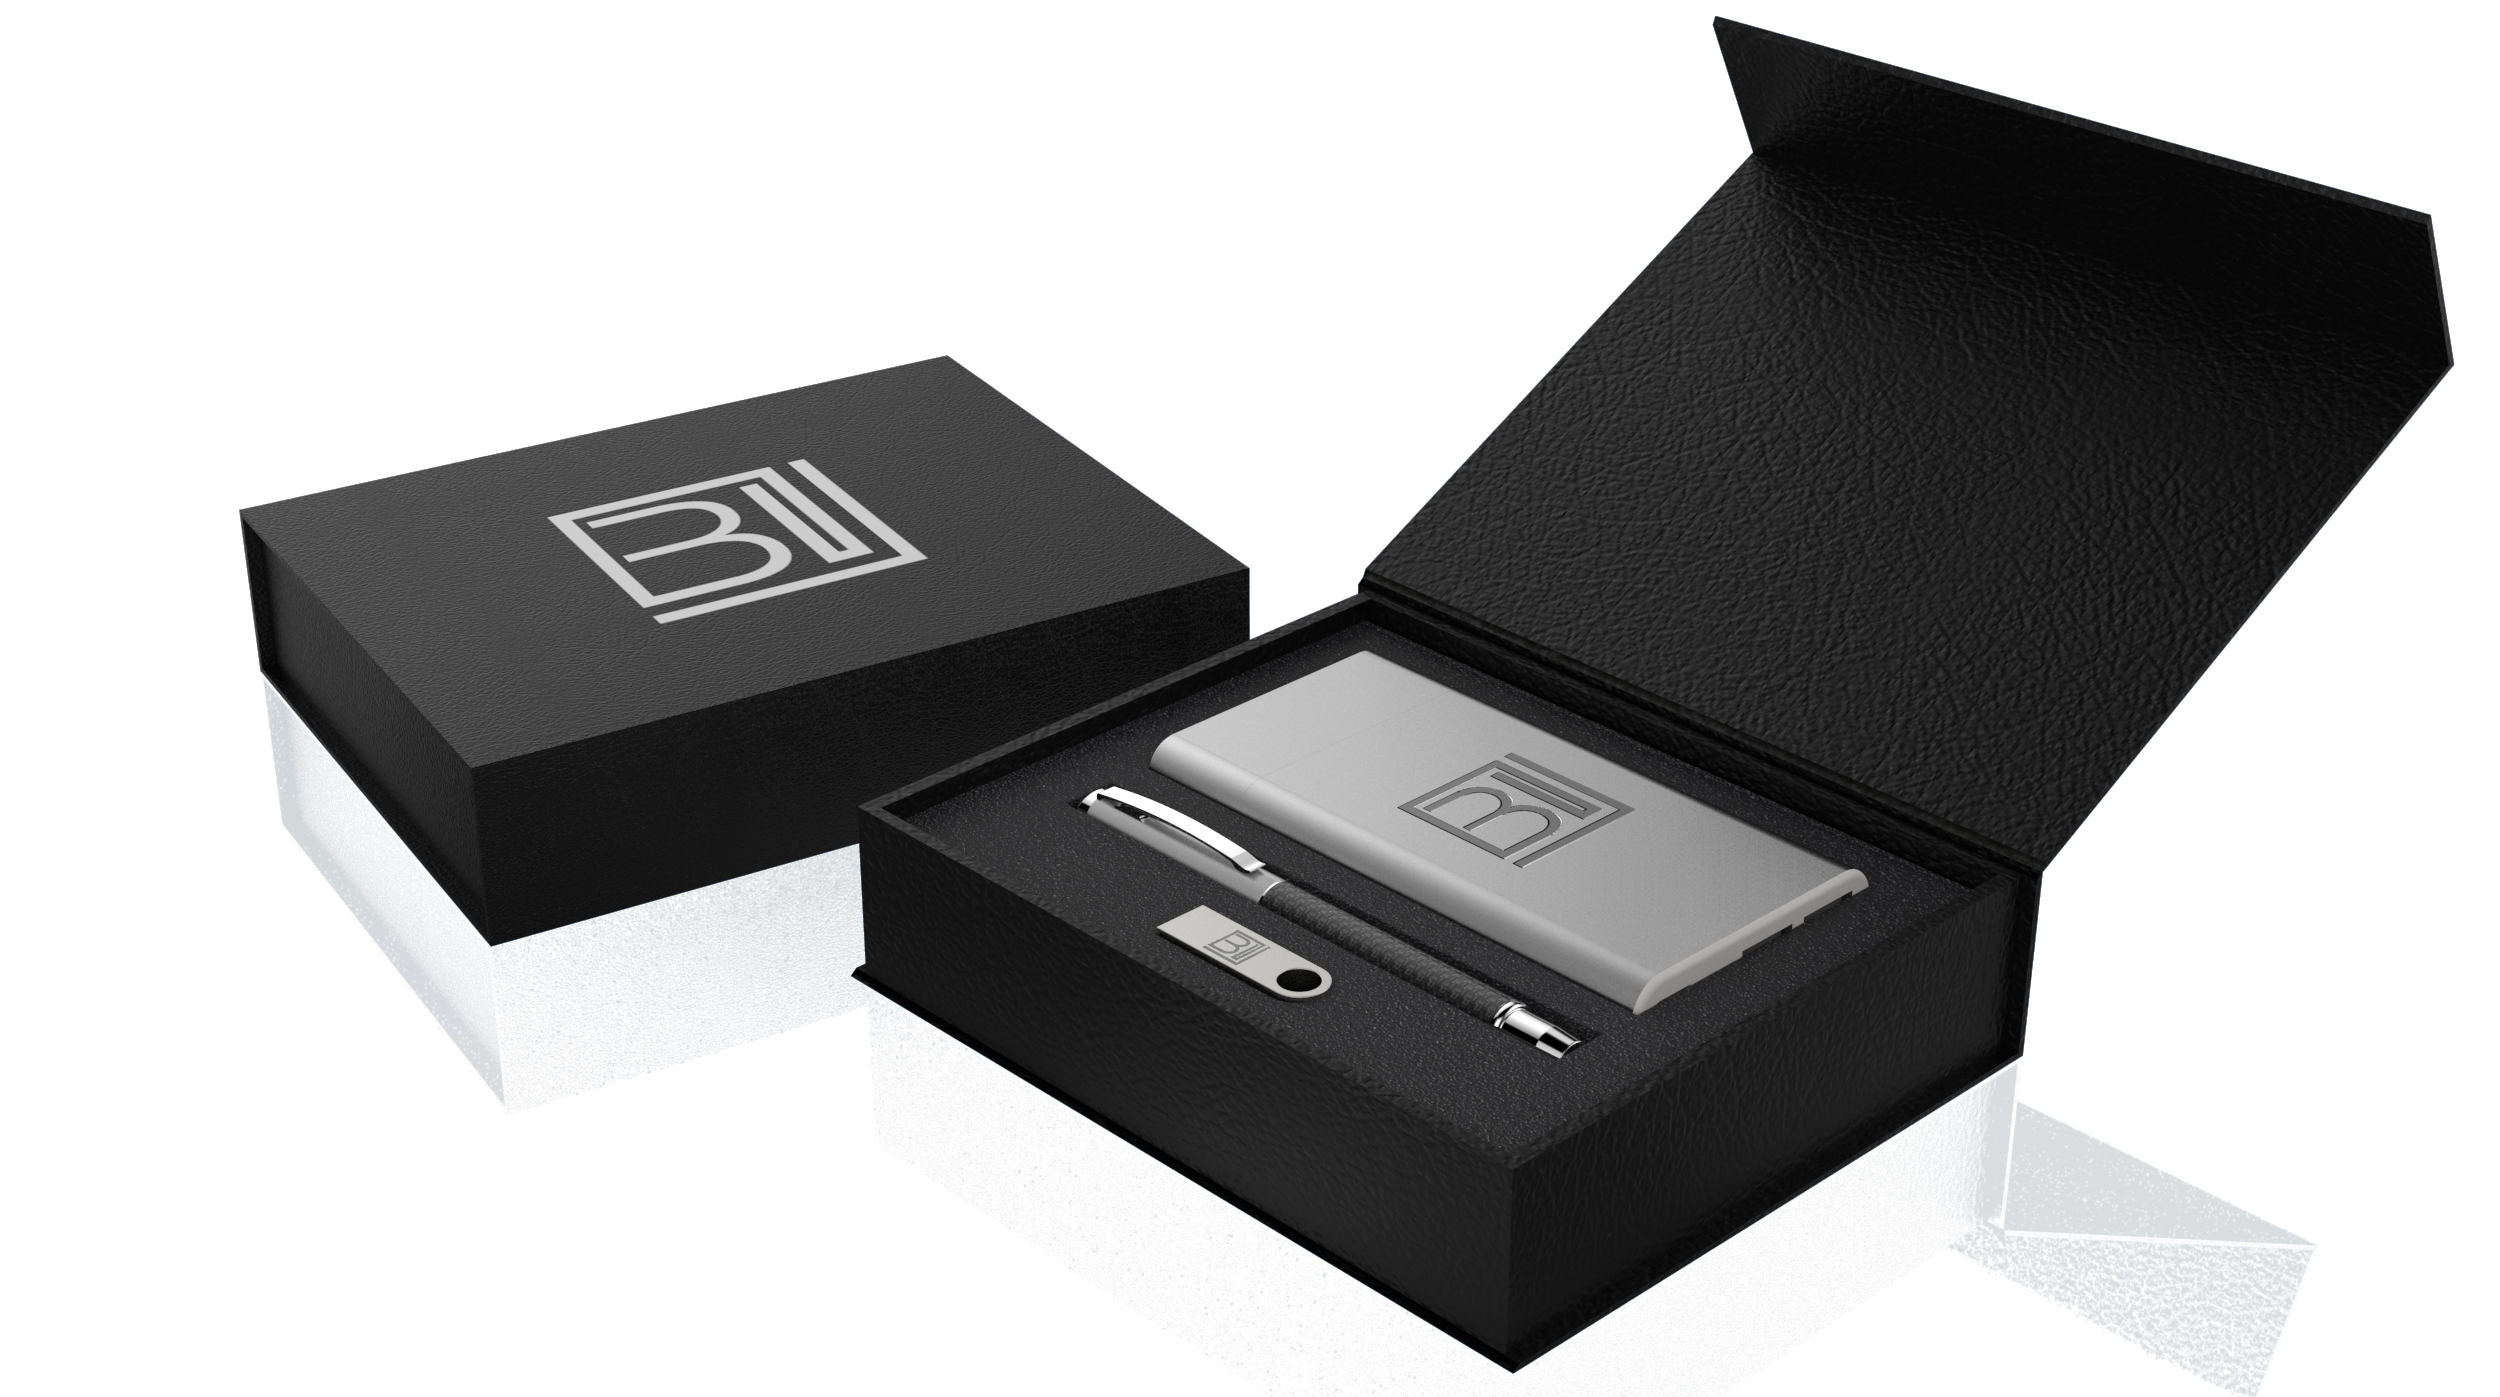 X11 10,000 pbank, carbon pen and 792.786.png